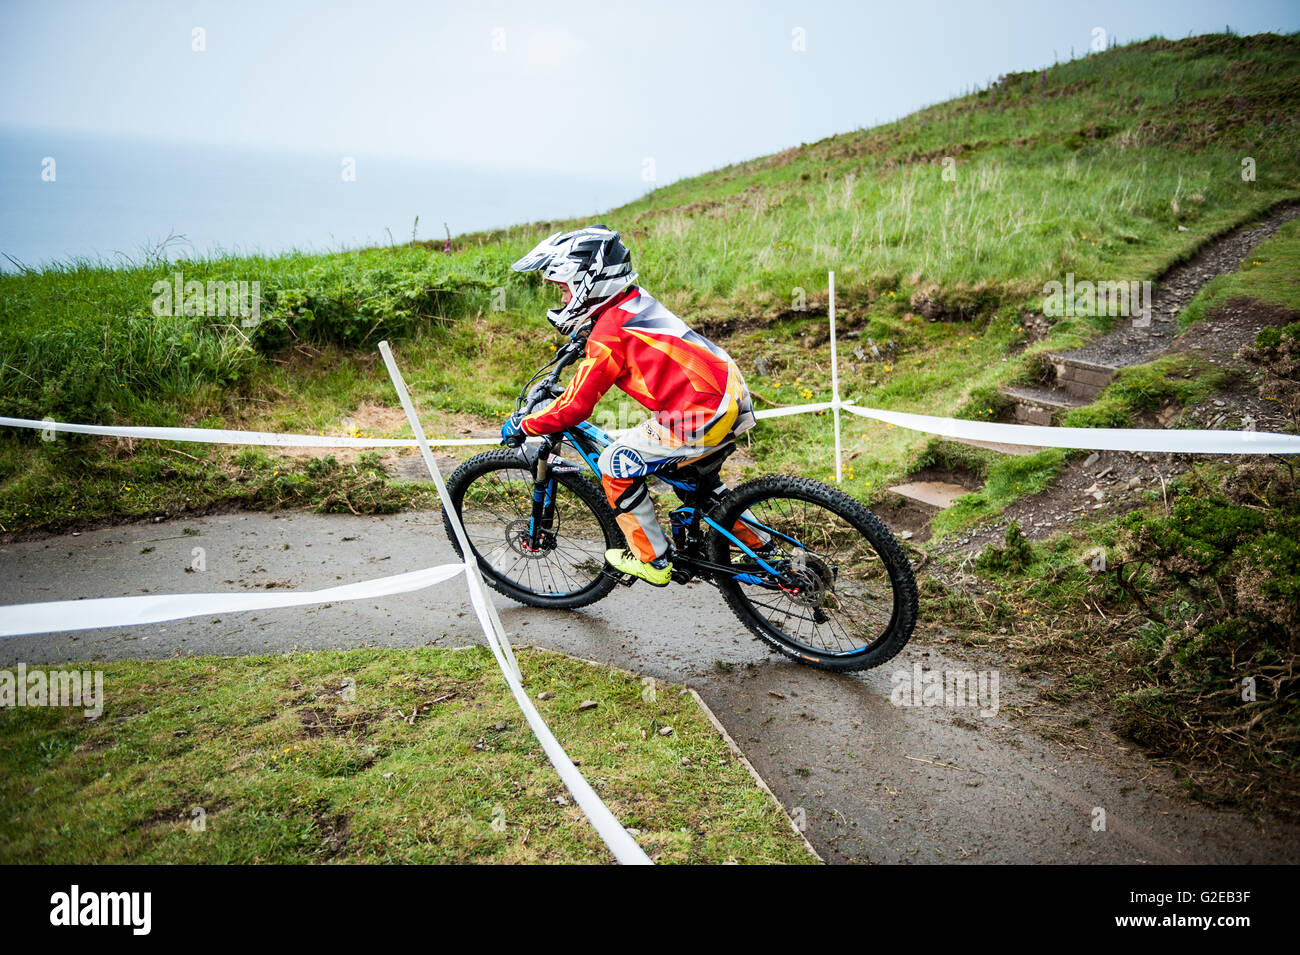 Aberystwyth, Wales, UK. 28th May, 2016. Conquer The Cliff 2016 : Riders take part in the Mountain Bike Downhill - Stock Image